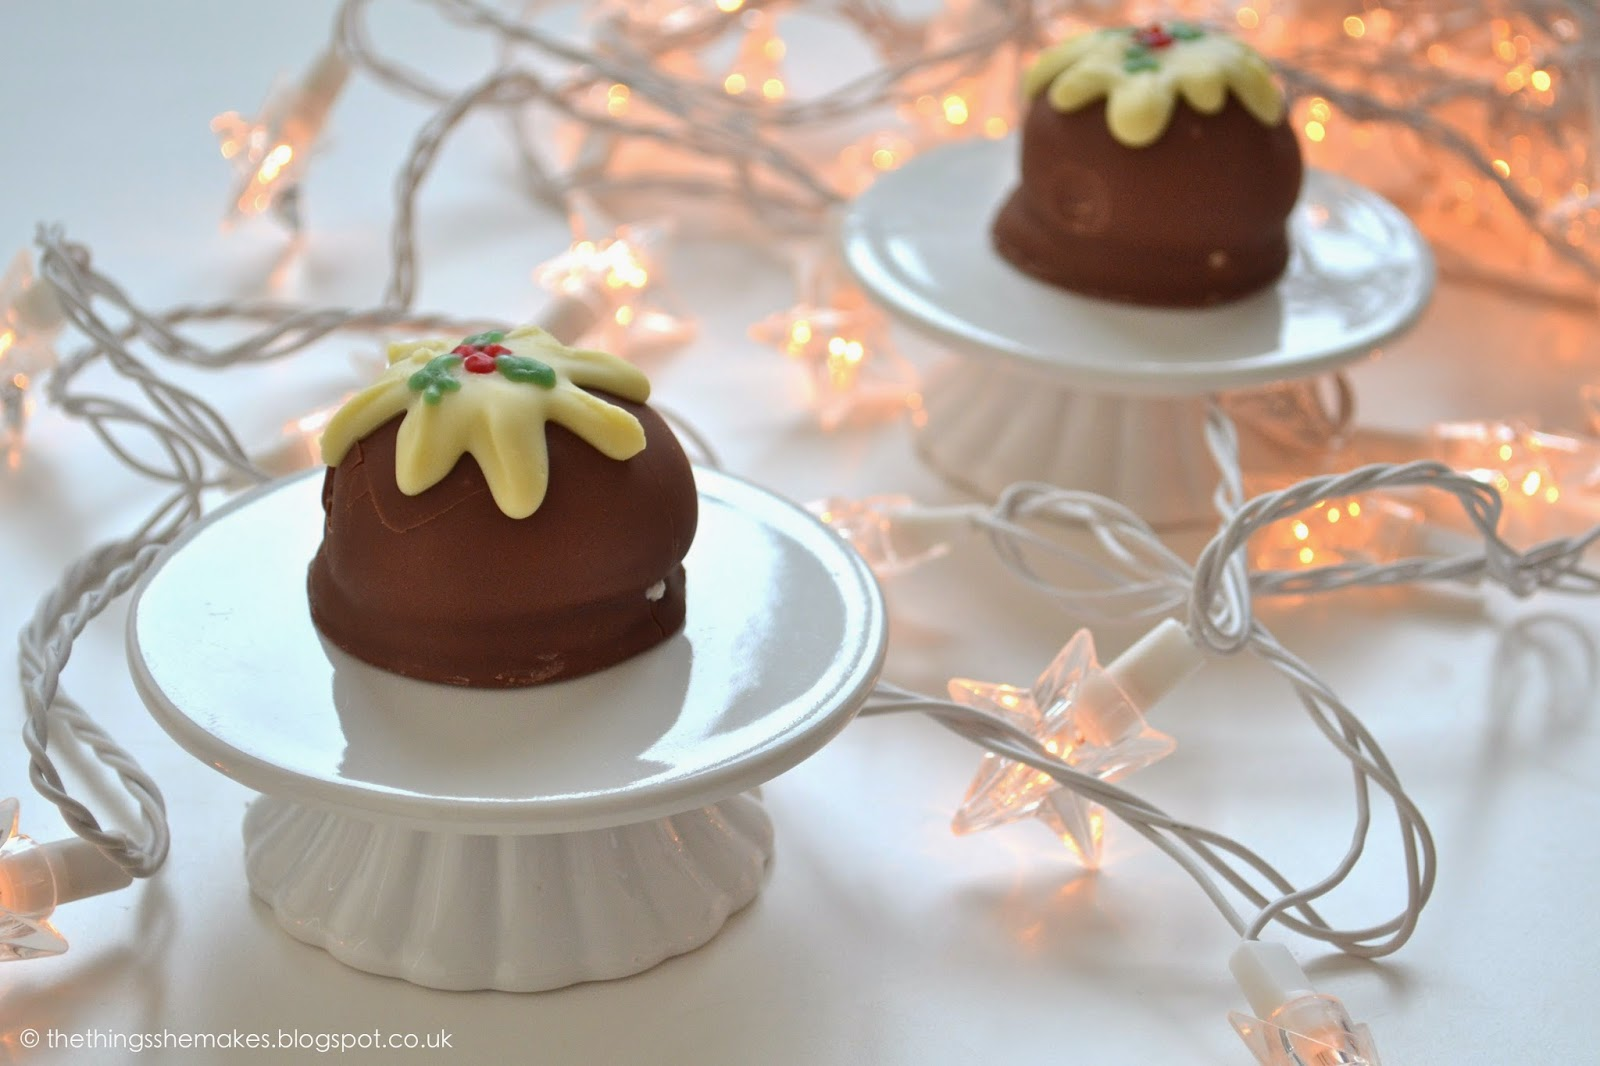 cannocks teacakes decorated with white chocolate and icing to look like christmas puddings